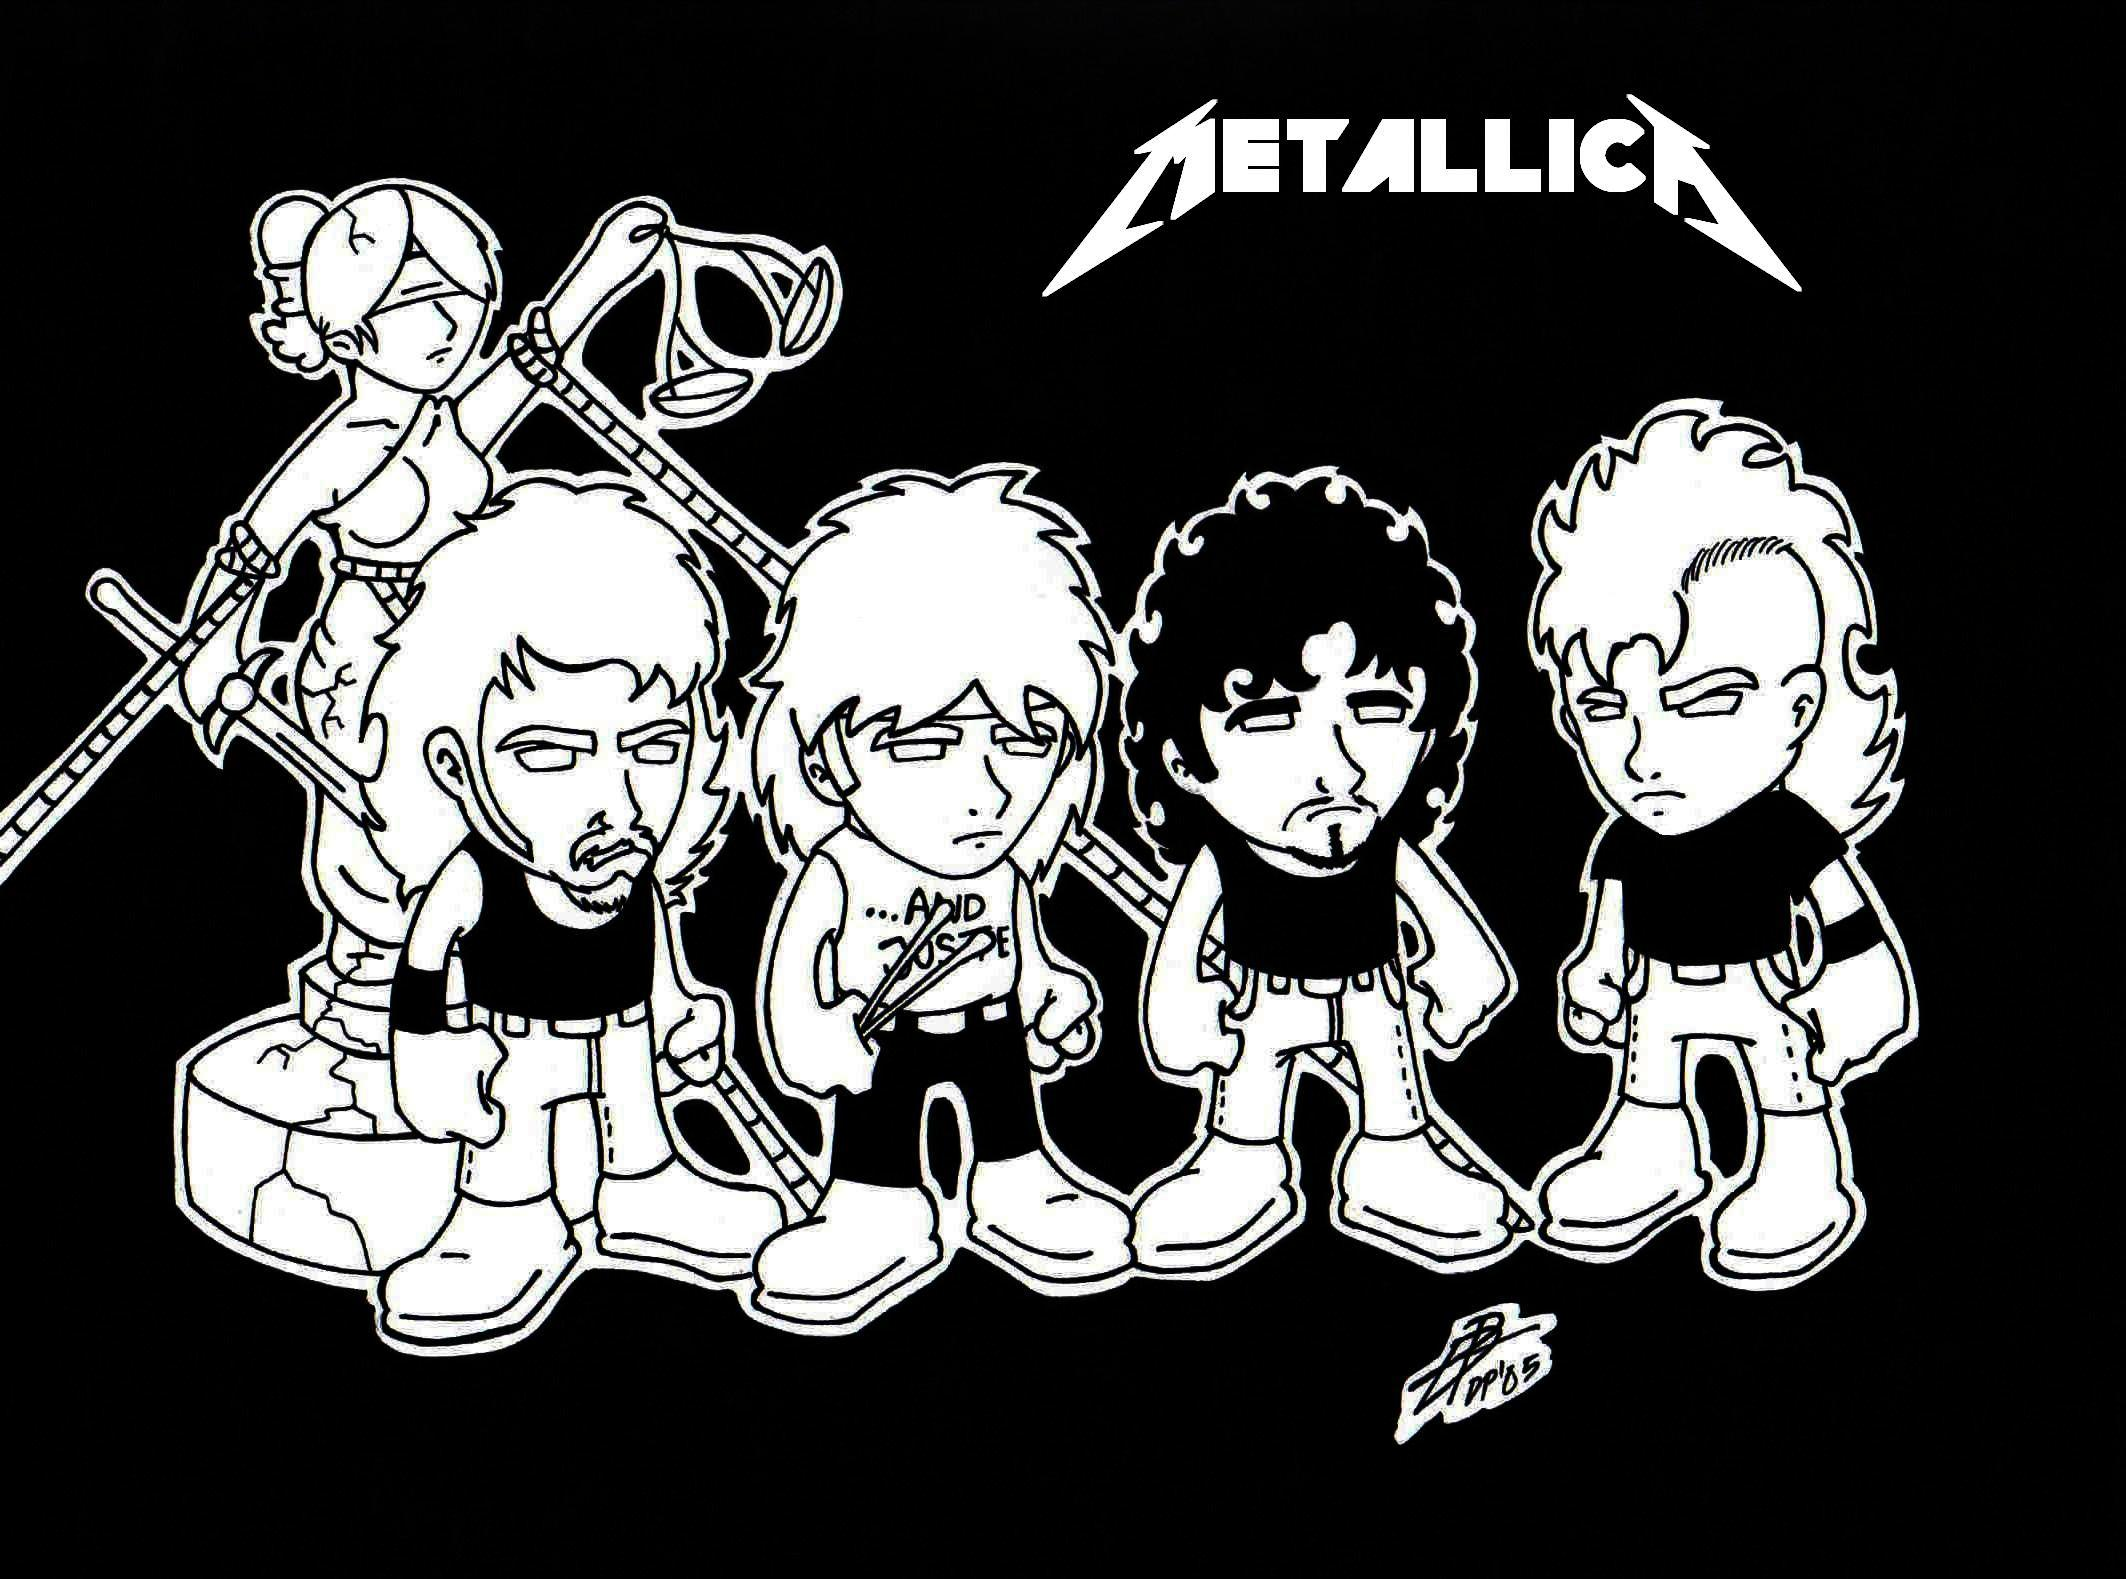 metallica and justice for all wallpaper   Quotekocom 2126x1579